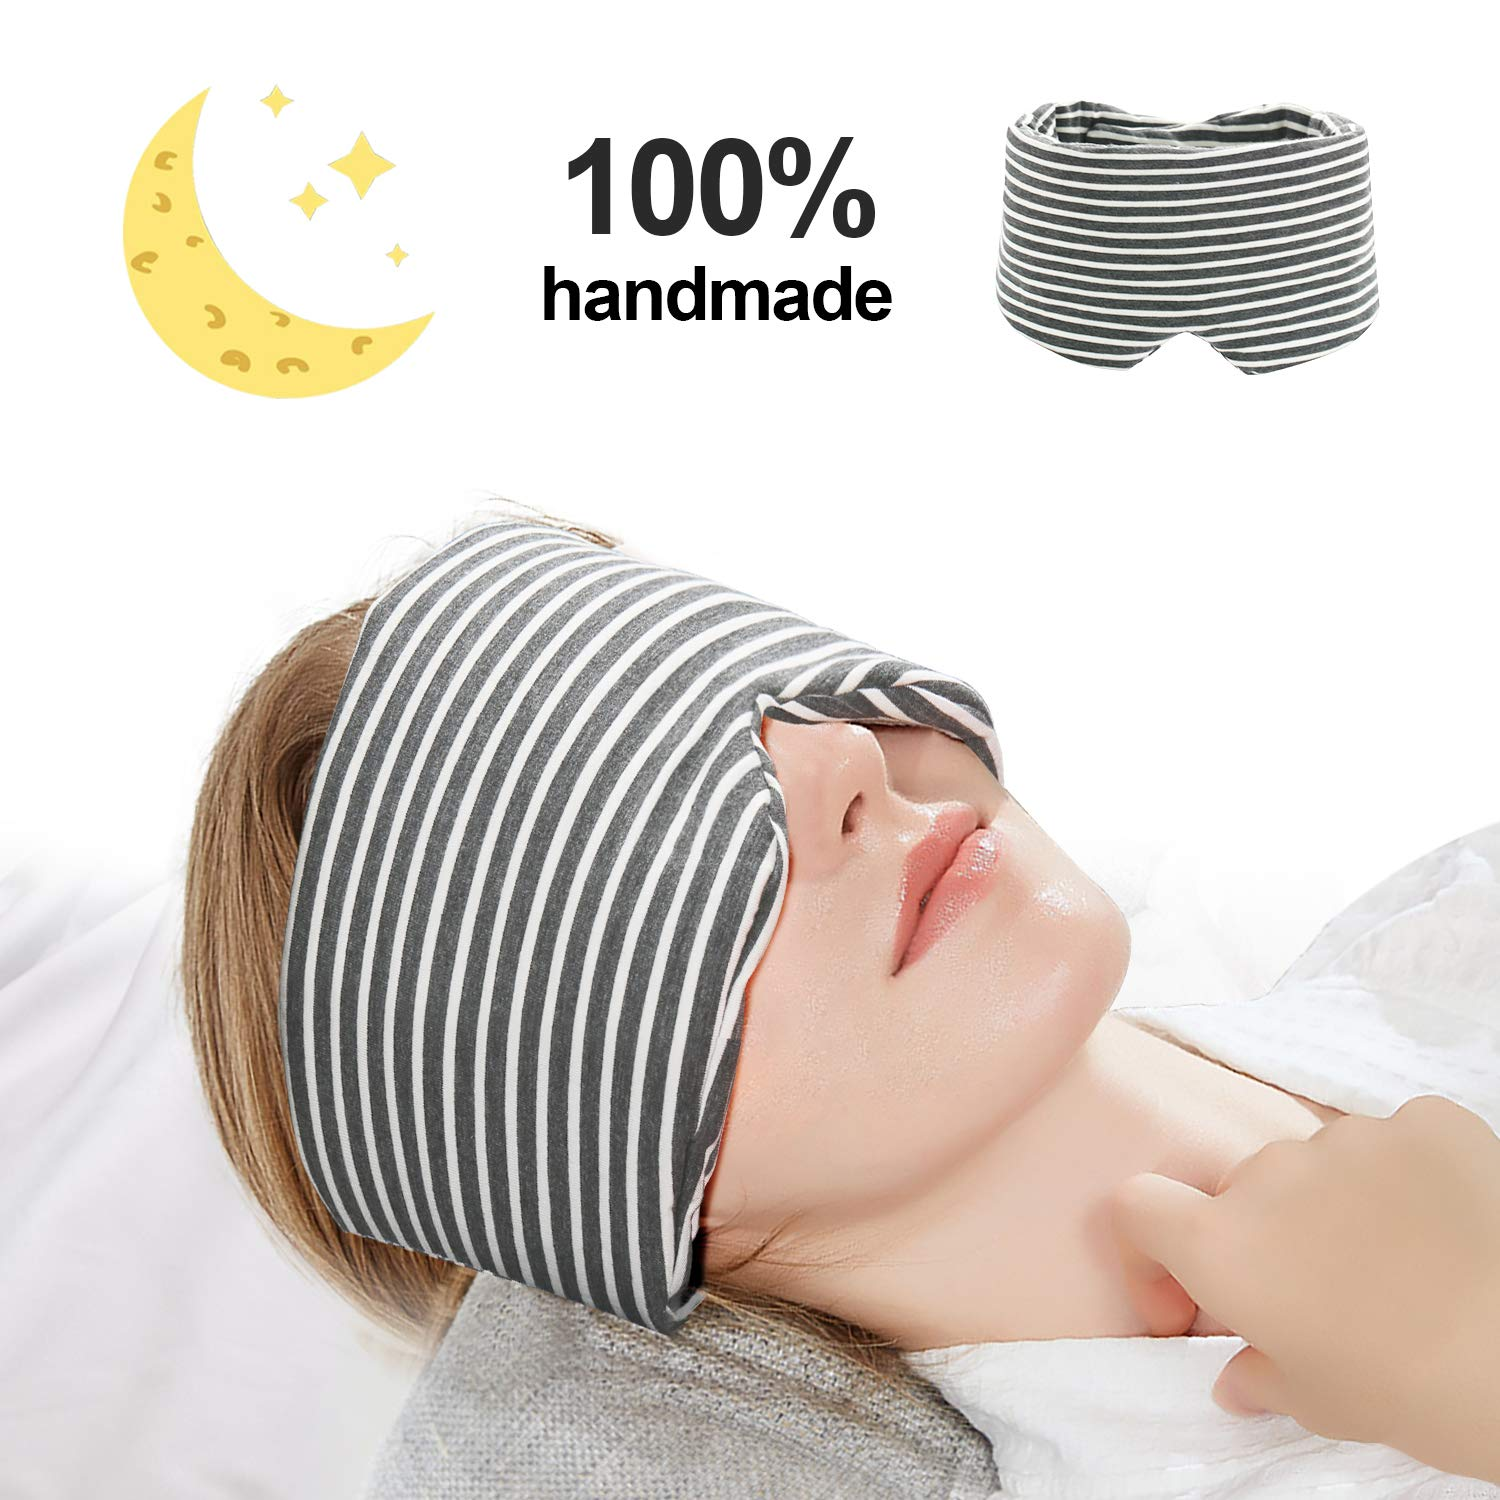 isnowood Cotton Sleep Mask - 100% Handmade Light Blocking Eye Mask for Woman Man Kids, Adjustable Blinder Blindfold with Travel Pouch for Airplane, Camping, Travel, Shift Work (Gray) by isnowood